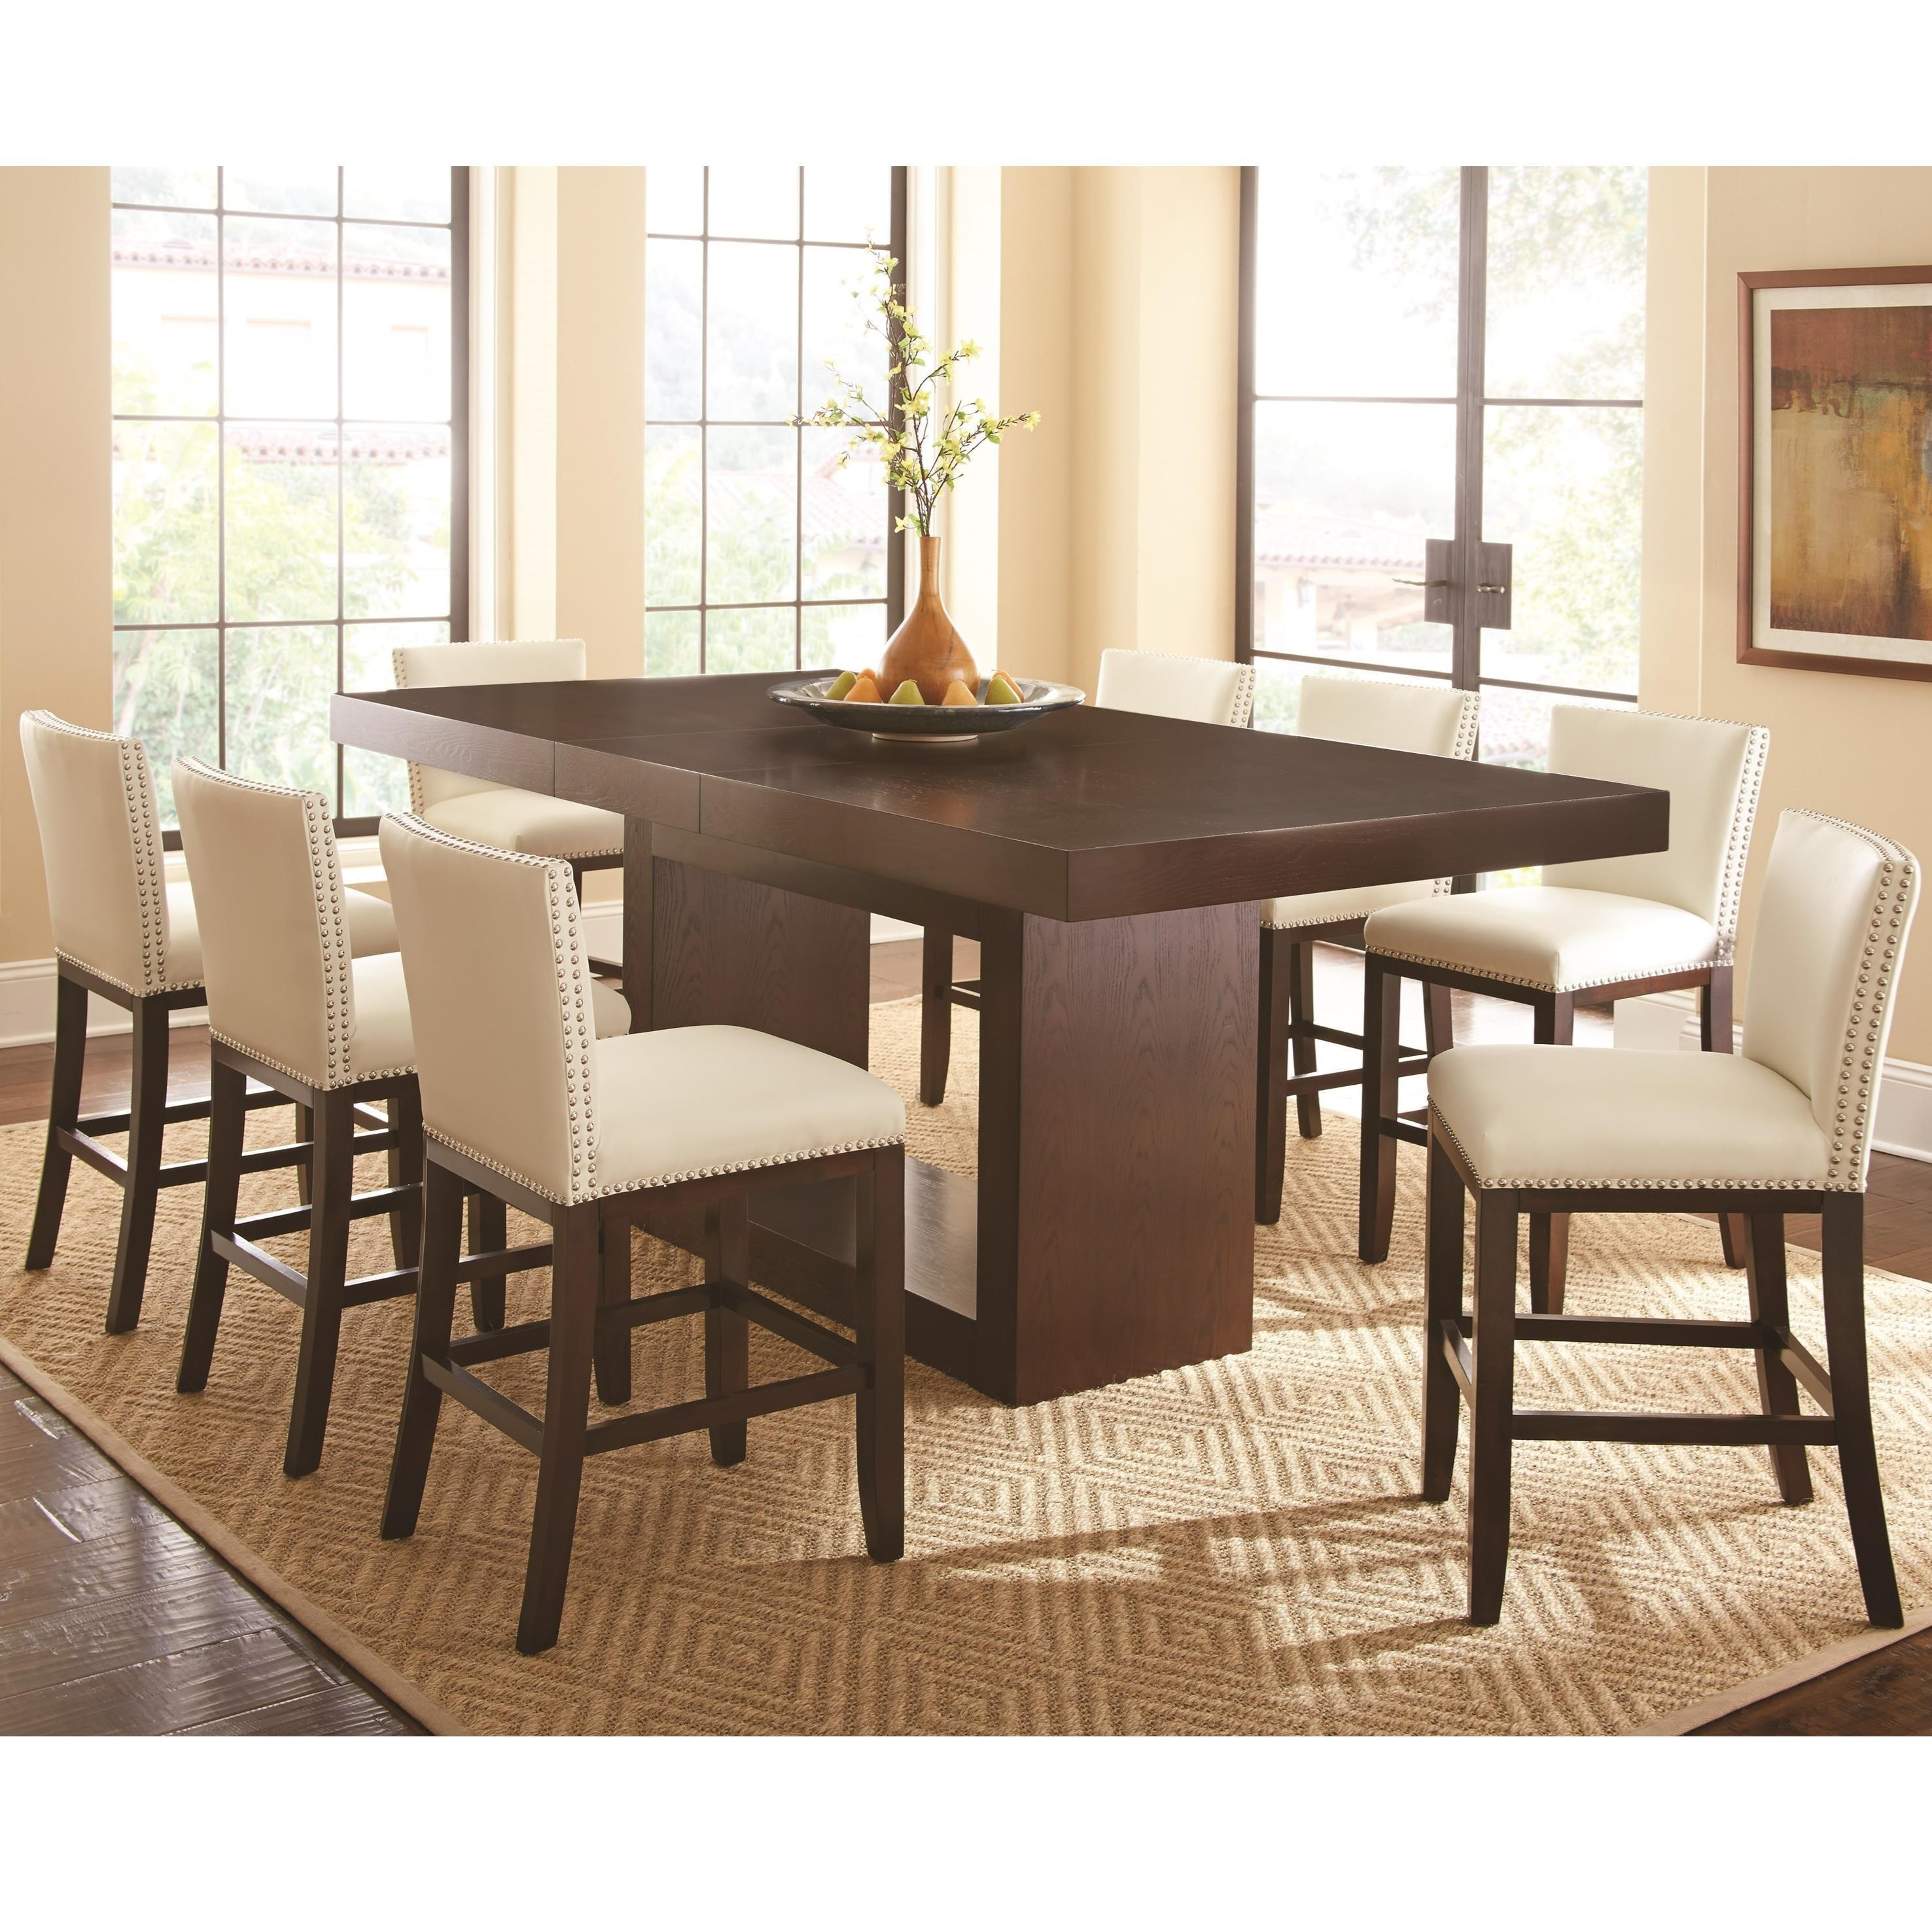 Antonio 9 Piece Counter Height Dining Set With Tiffany Upholstered Chairs  By Steve Silver